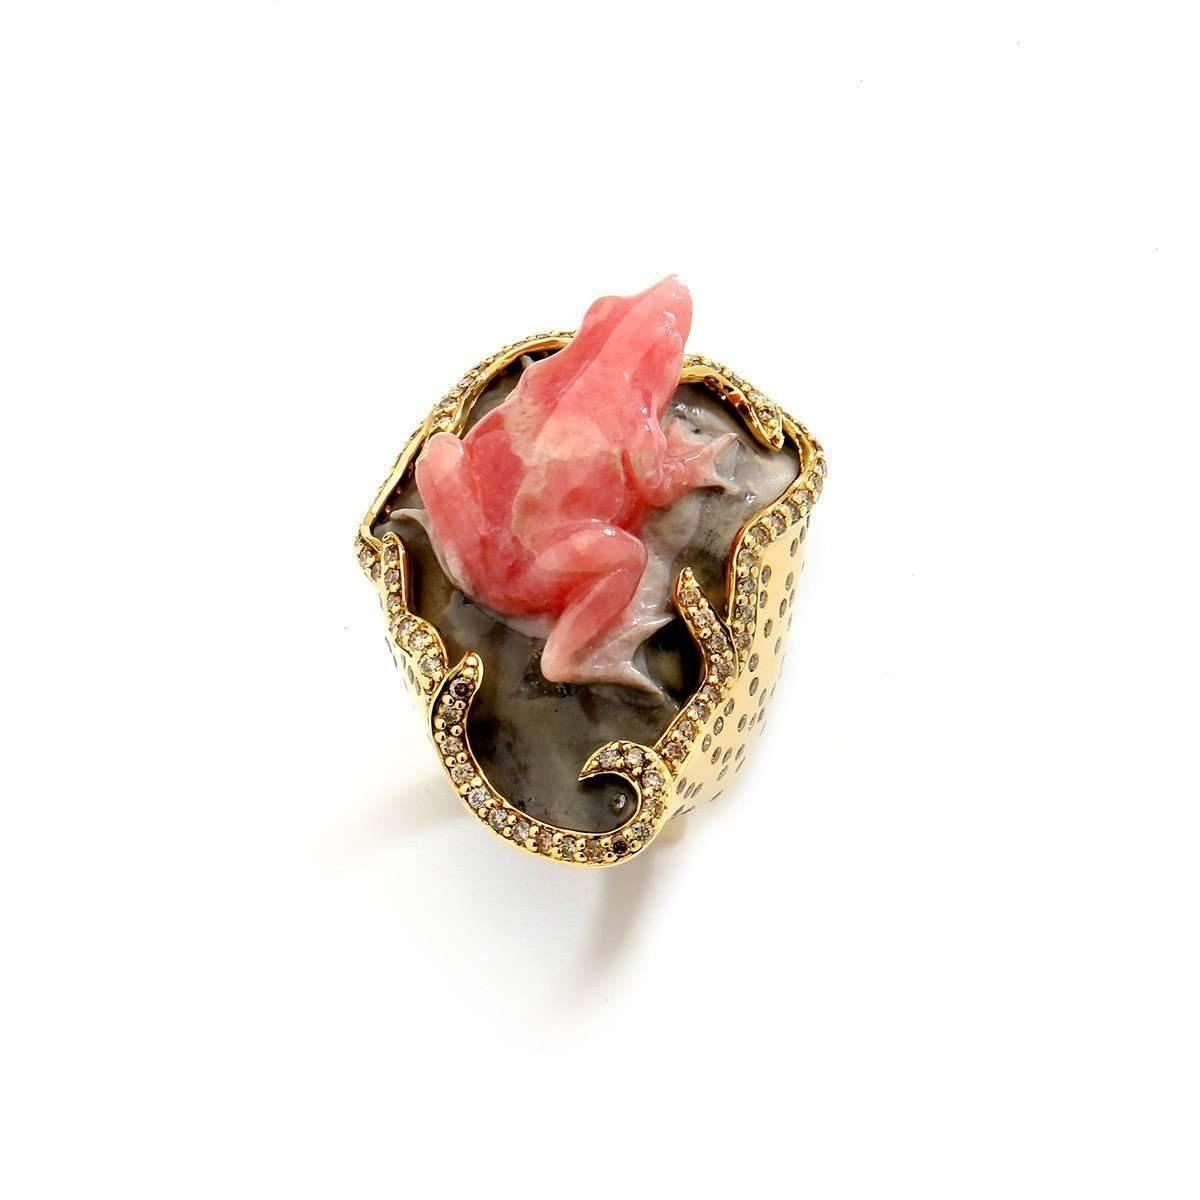 Syna 18kt Rhodocrosite Frog Ring With Champagne Diamonds - UK N - US 6 1/2 - EU 54 gEOjt